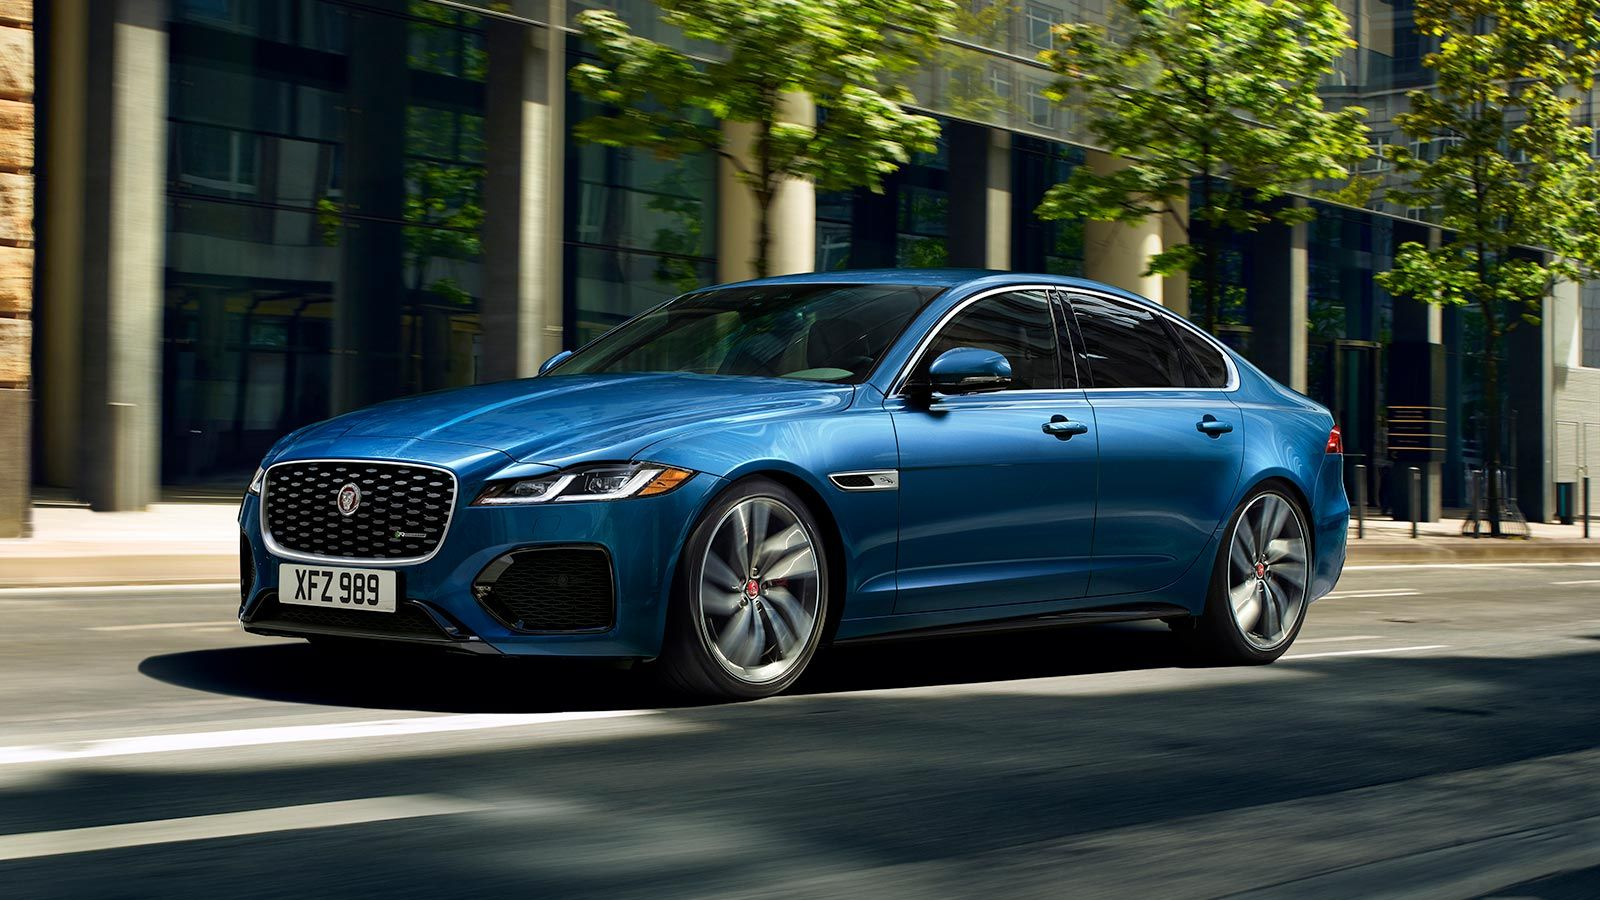 2021 Jaguar XF: Costs, Facts, And Figures   HotCars